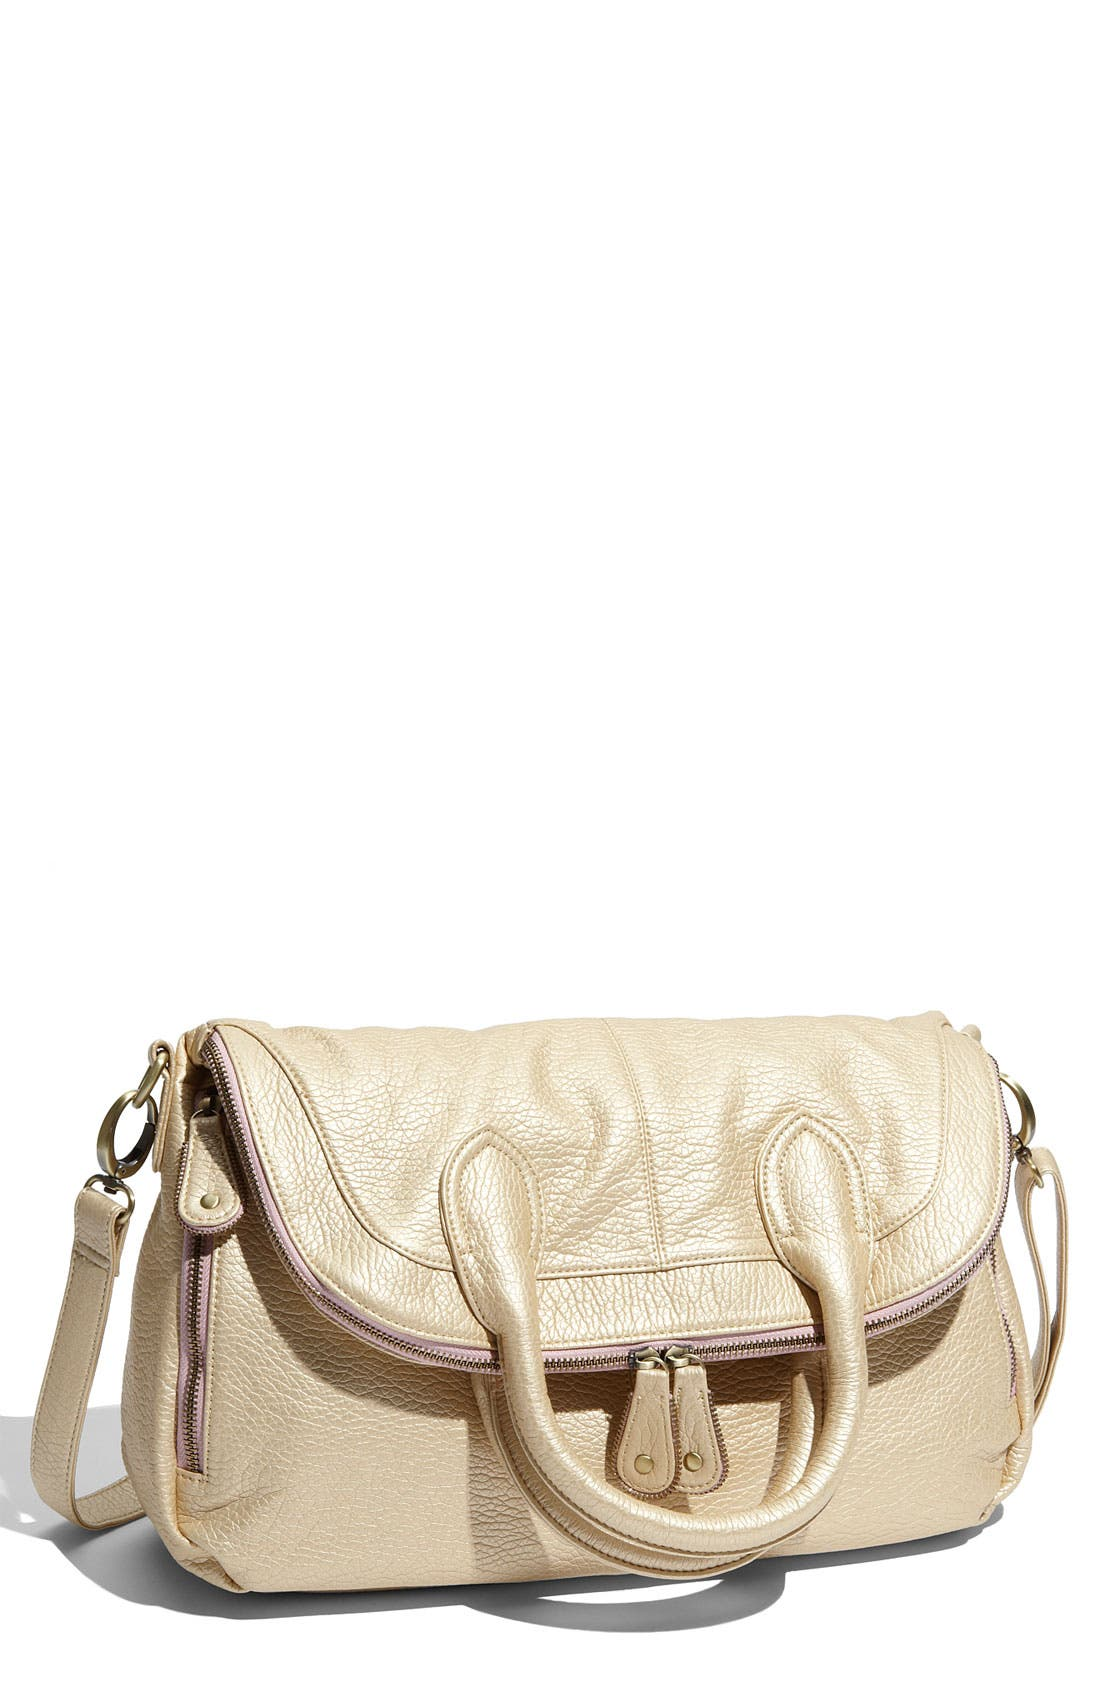 Main Image - Tulu Foldover Faux Leather Crossbody Bag